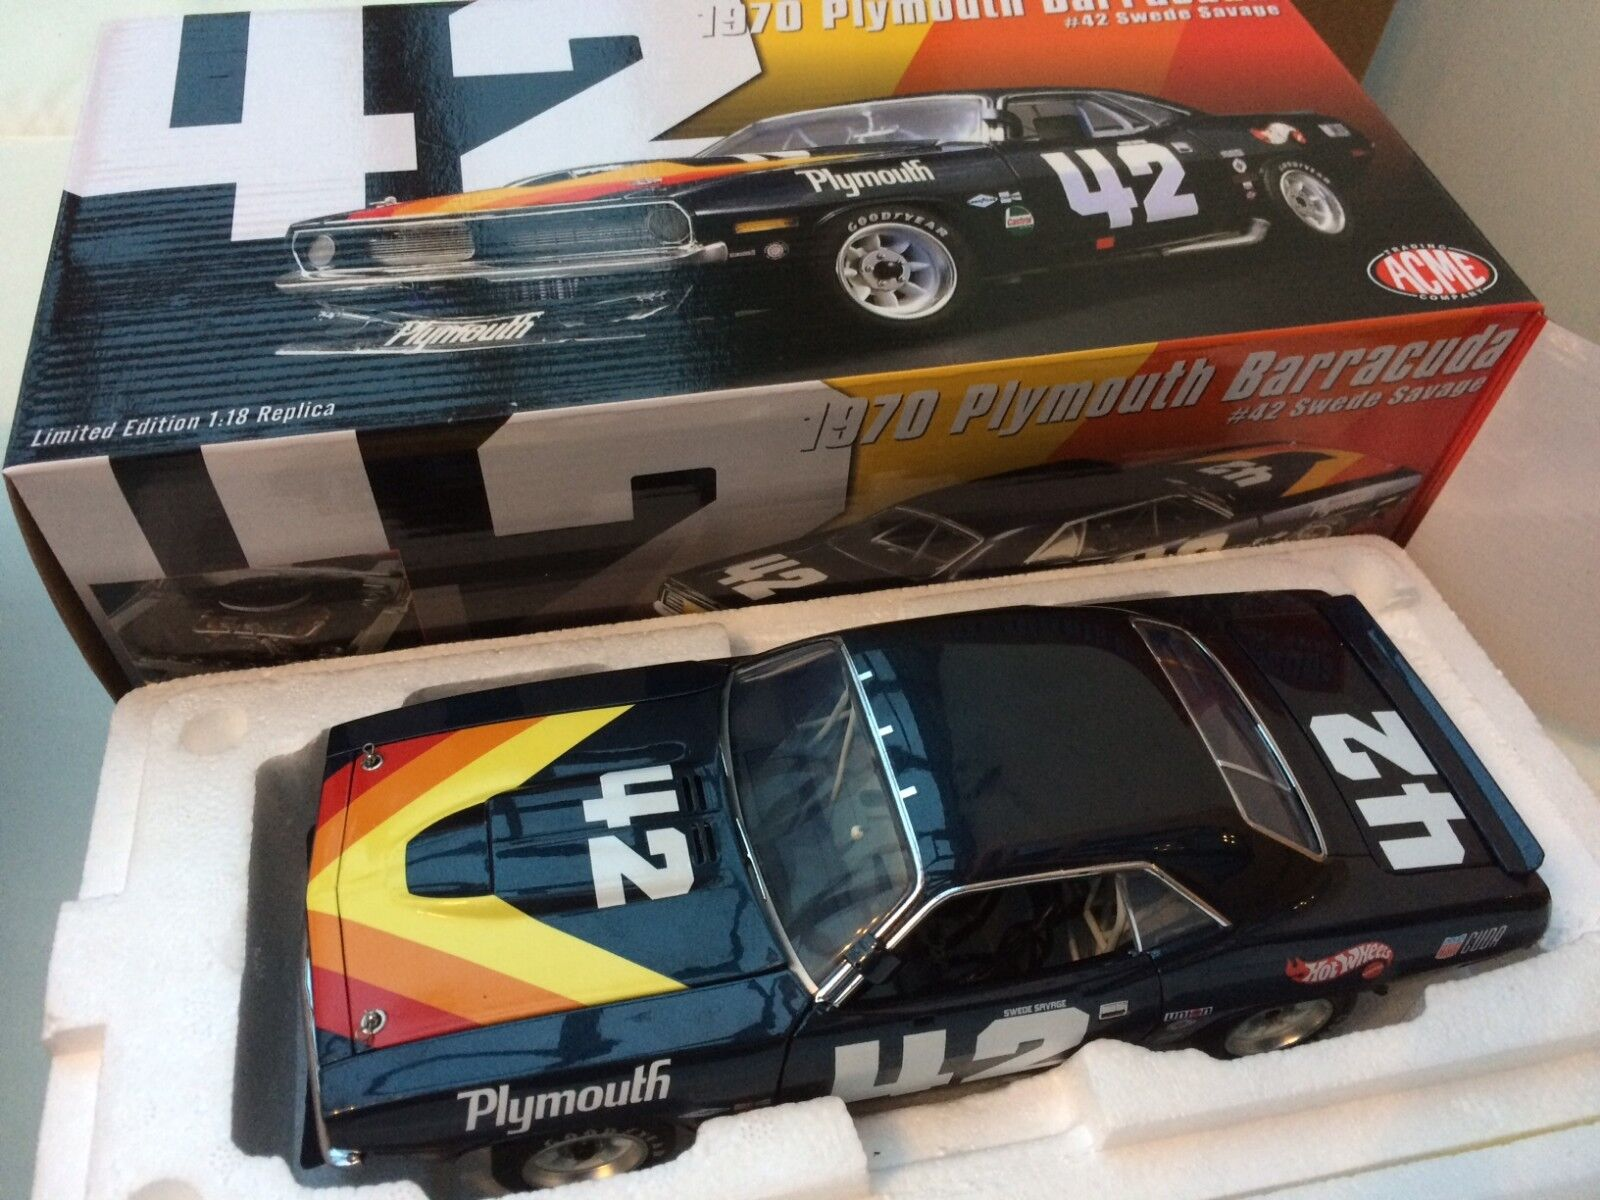 ACME 1806103 1806108 PLYMOUTH Trans Am BARRACUDA 1970 diecast models Savage 1 18